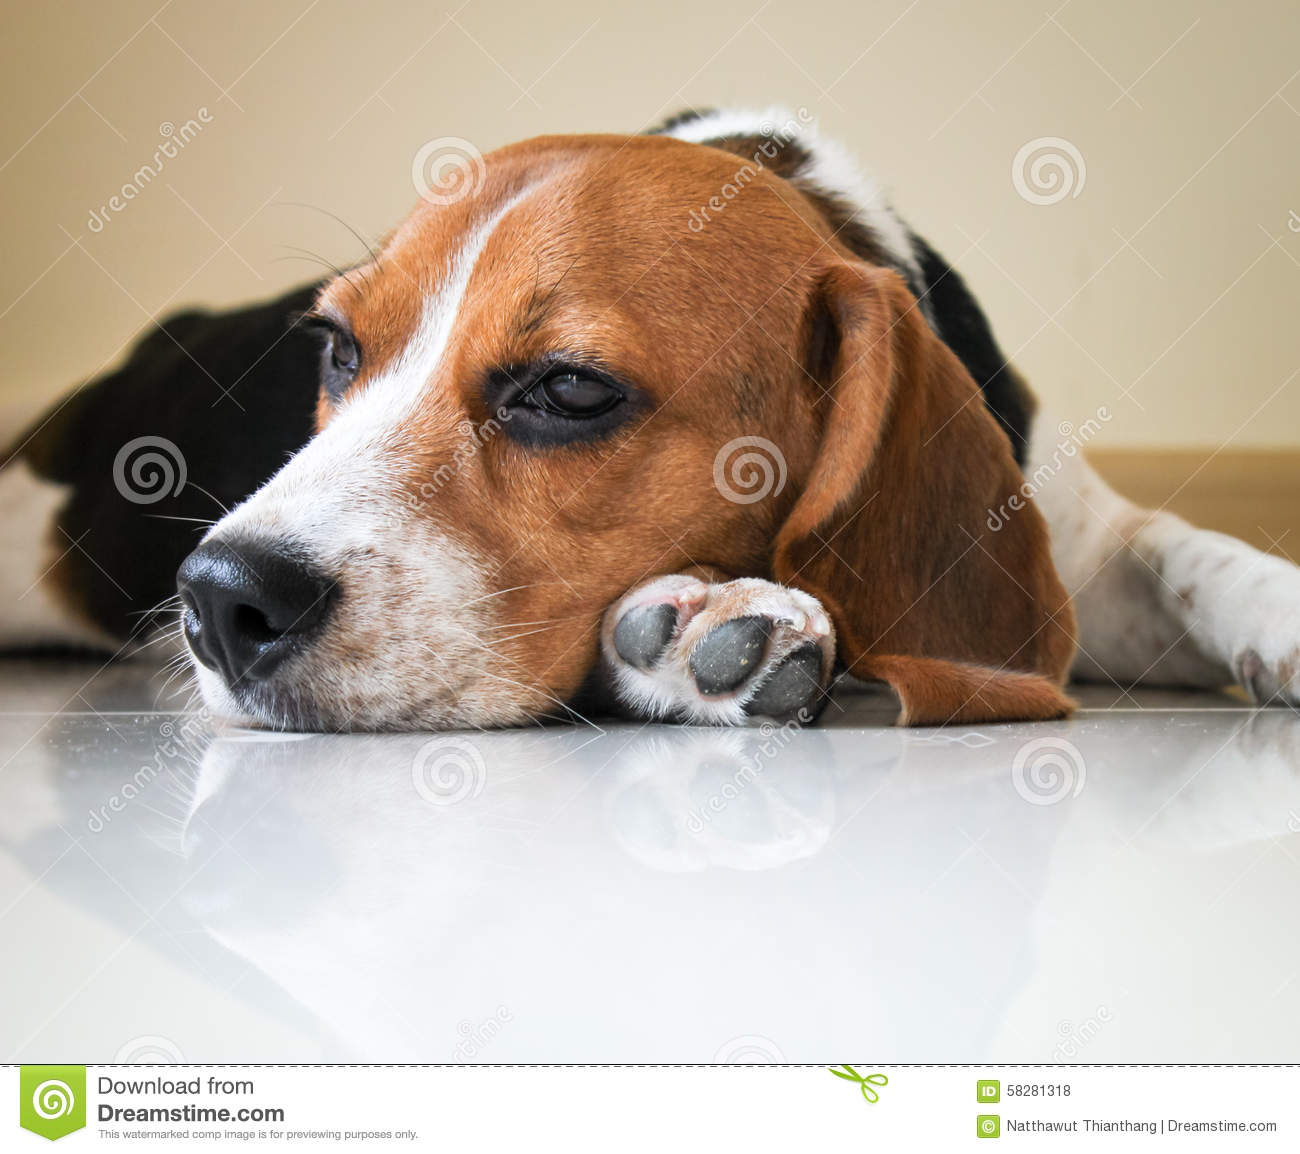 Portrait Cute Beagle Puppy Dog Stock Photo - Image: 58281318